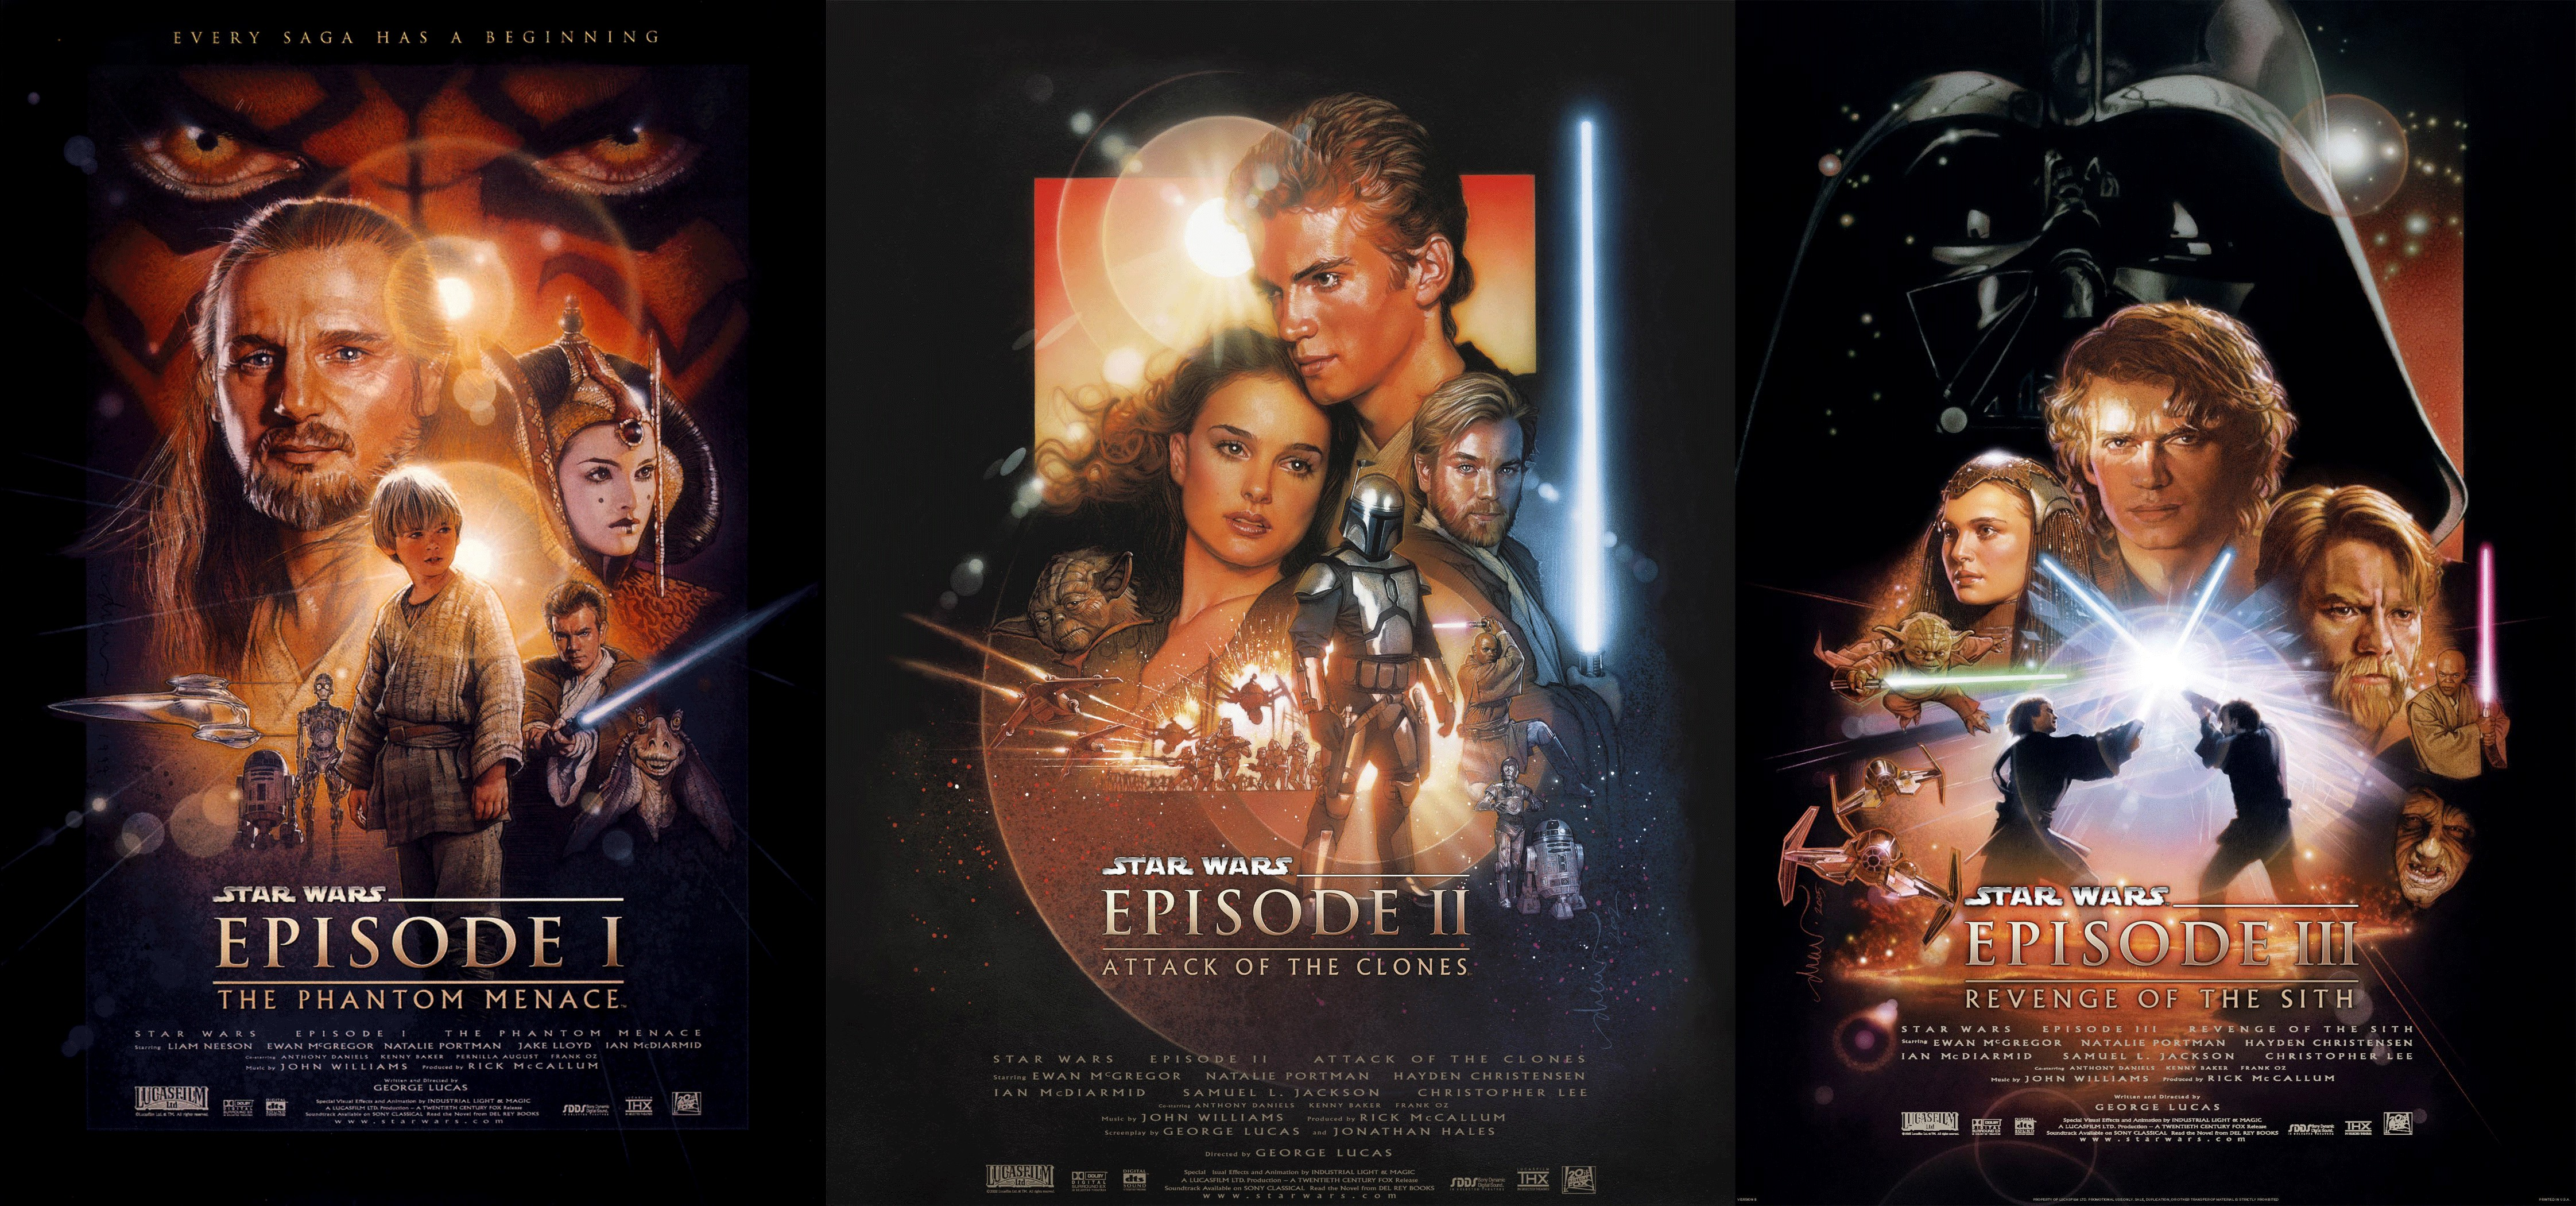 Star Wars Prequel Trilogy Hd Wallpaper Background Image 4487x2100 Id 932878 Wallpaper Abyss